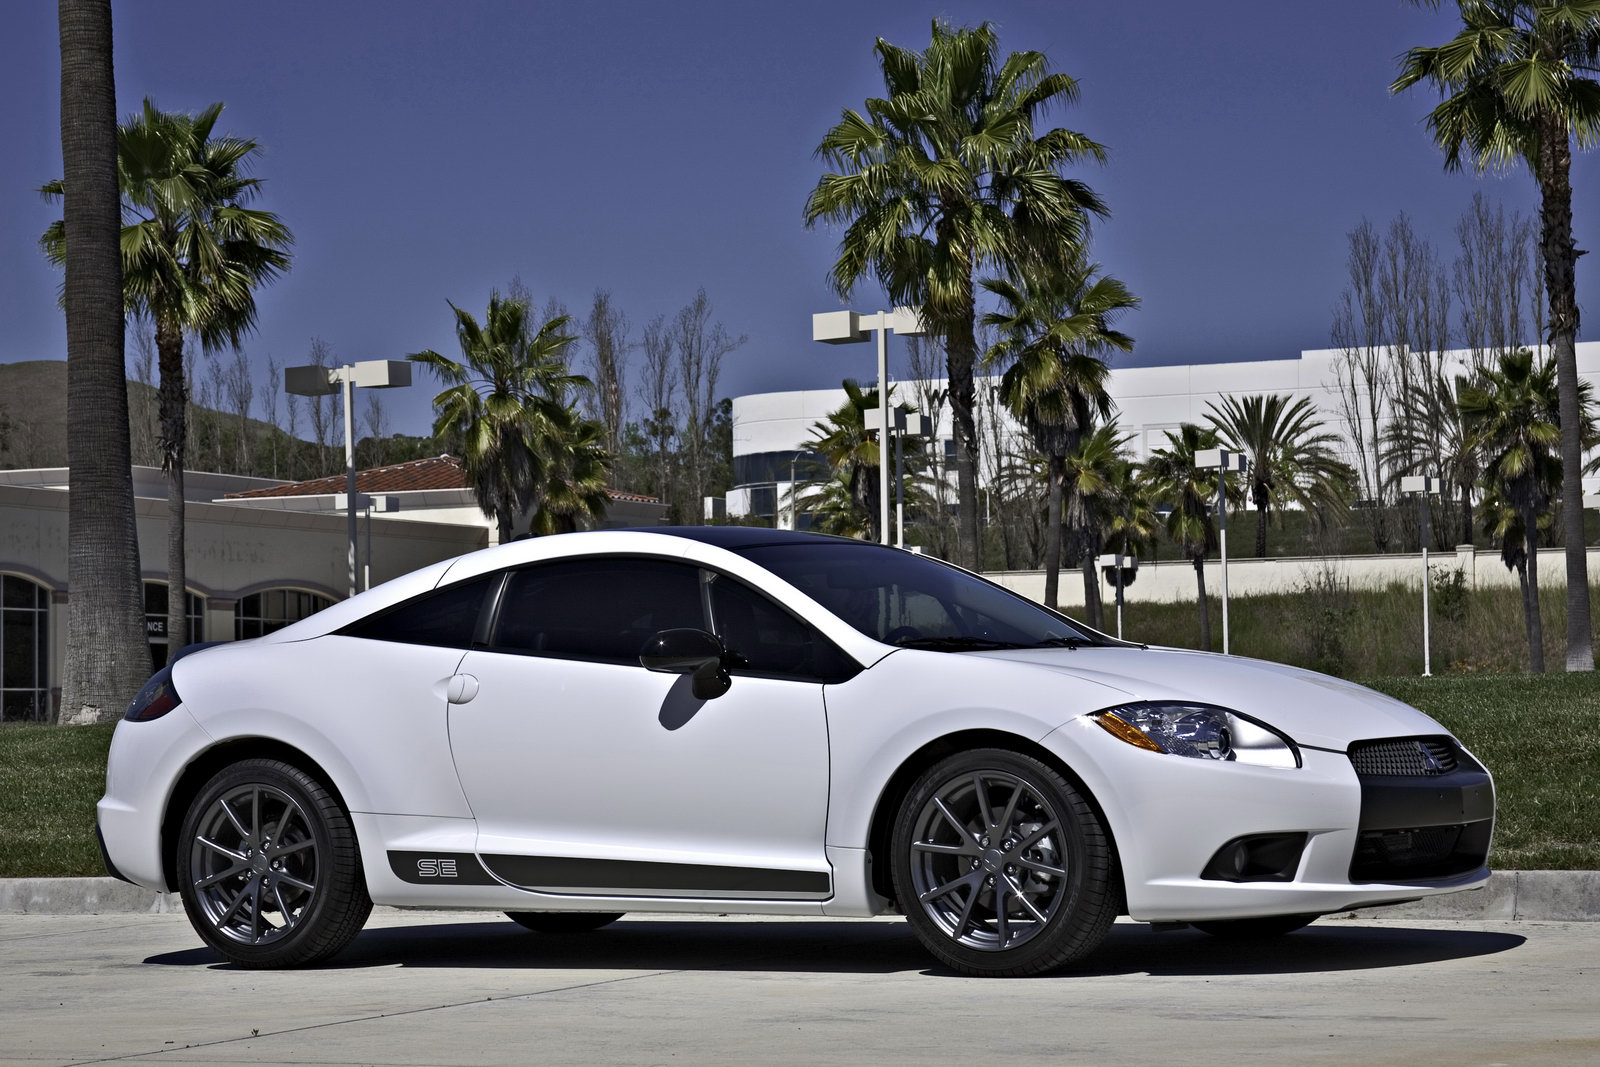 Mitsubishi announces Final 2012 Eclipse SE Special Edition